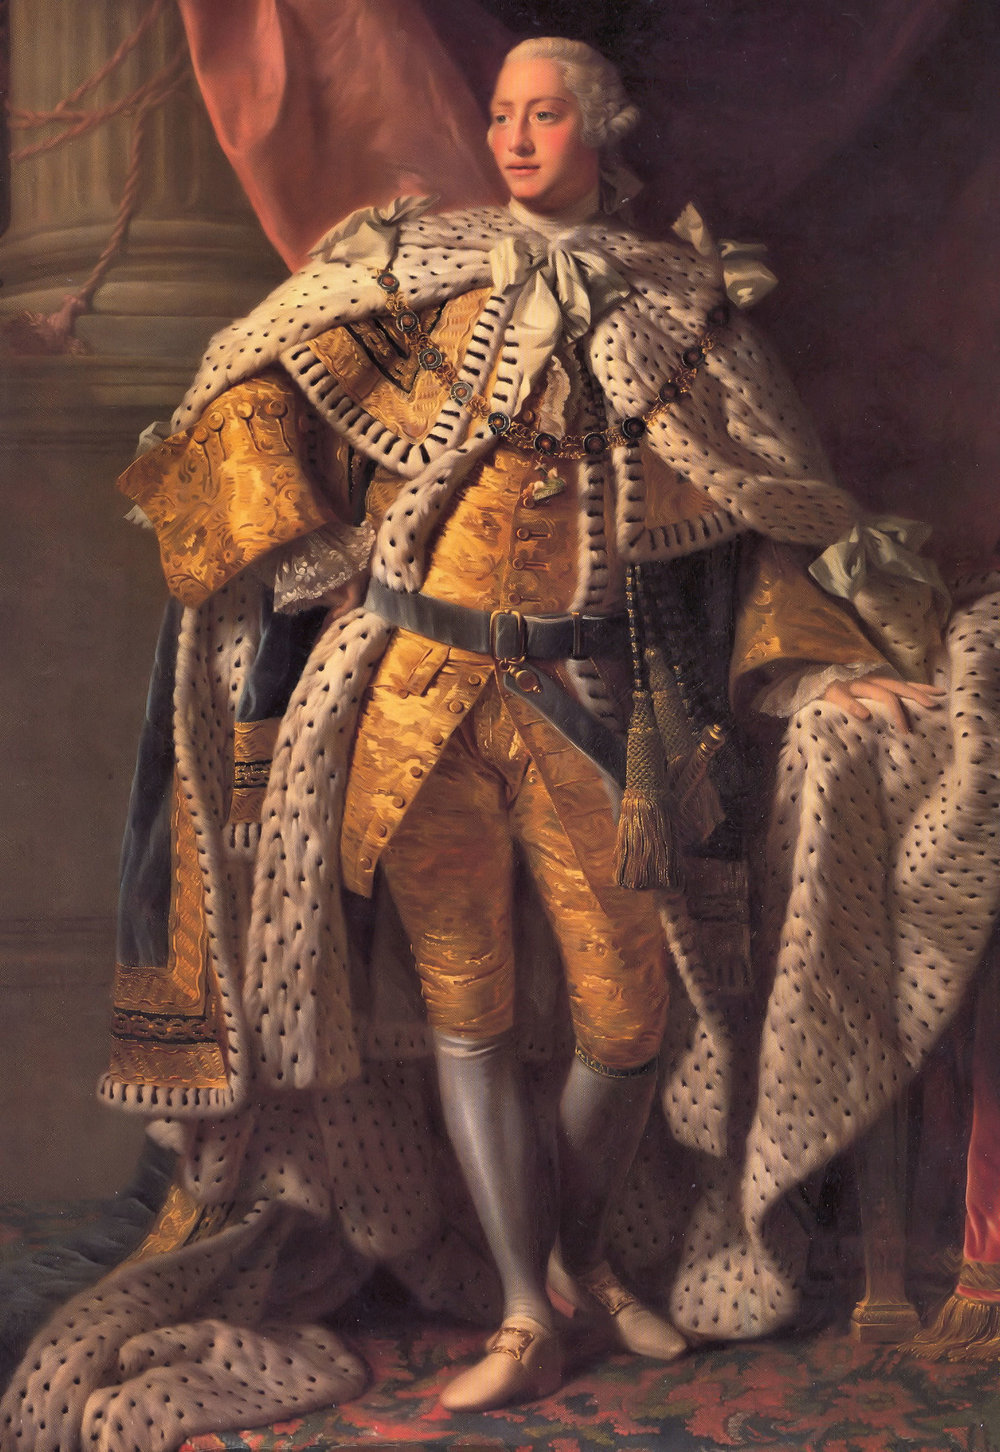 King George III - Prince William named his first born after this monarch and this original portrait hangs in the Grand Staircase of Hedsor House.